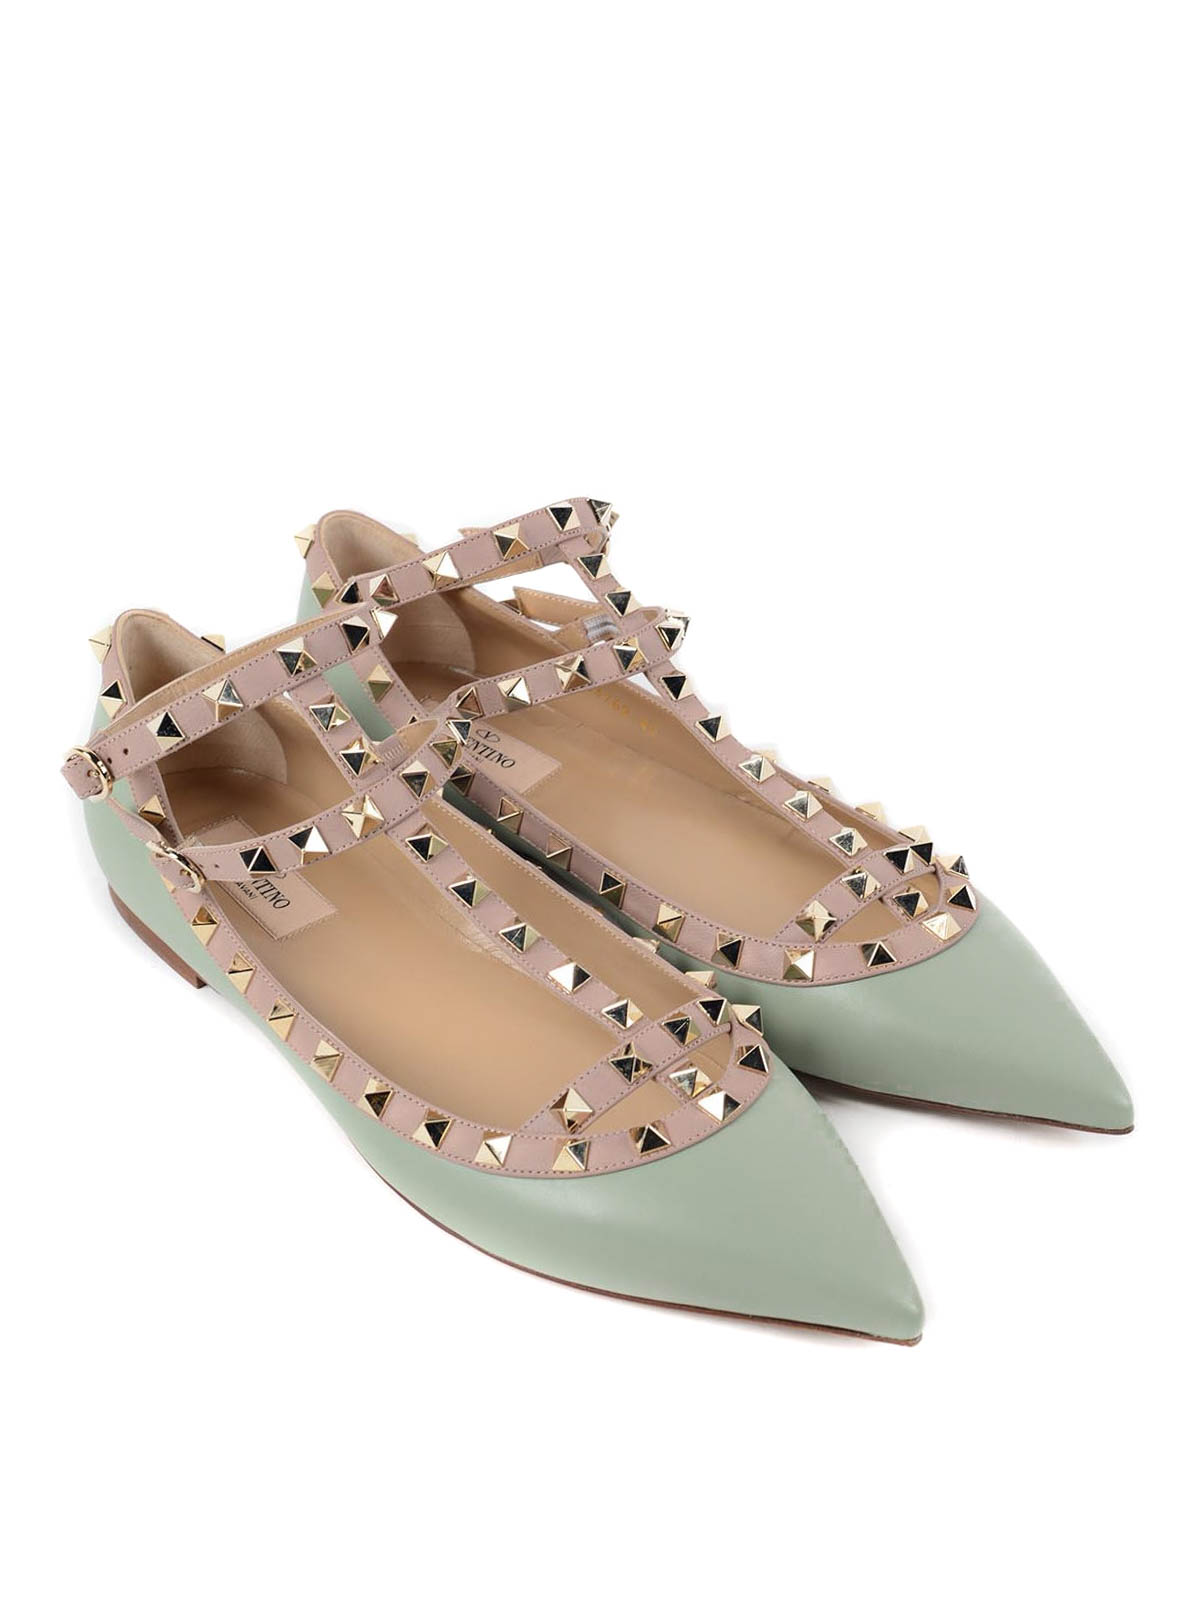 Valentino Flat Shoes Sale